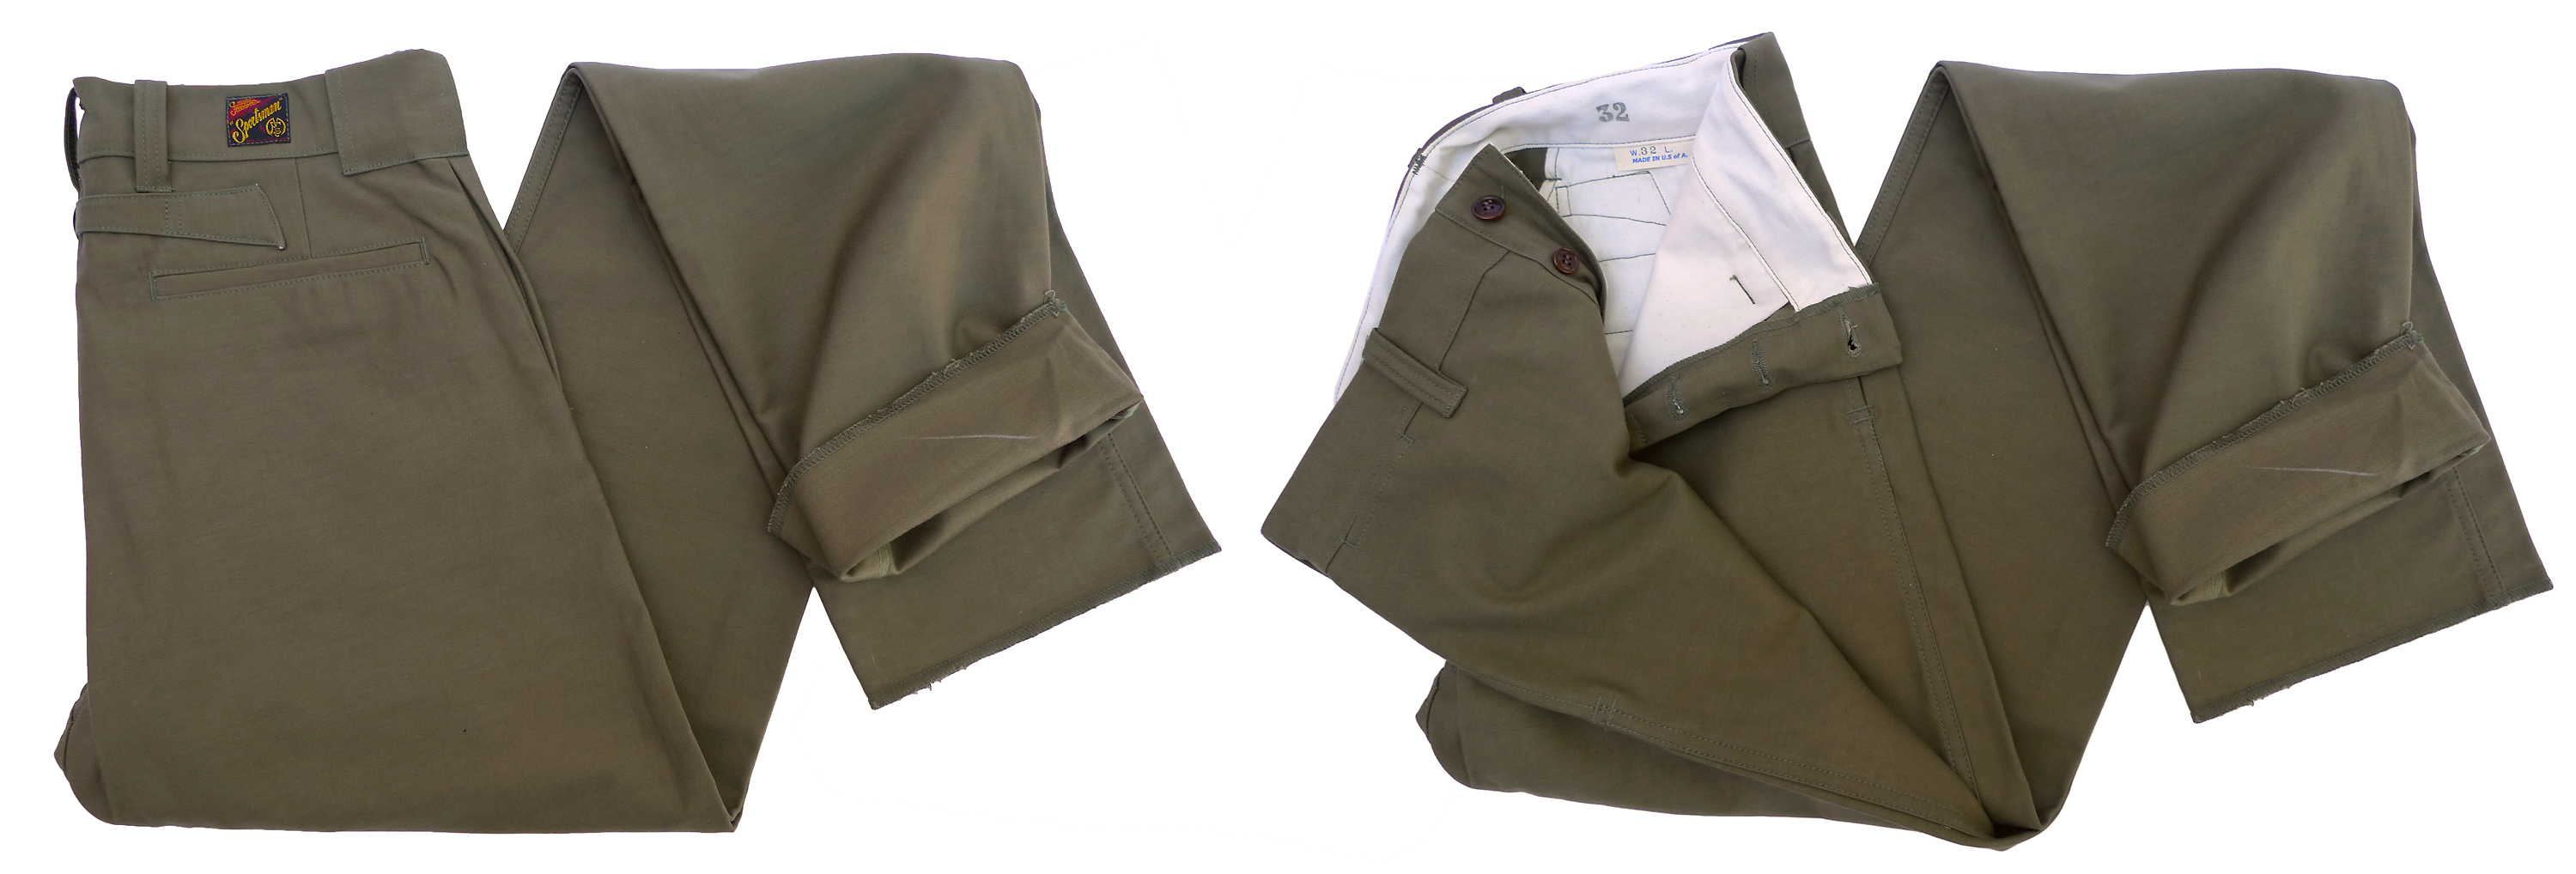 OG 107 Cotton sateen back Sportsman Chinos Fall 2014 Made in USA